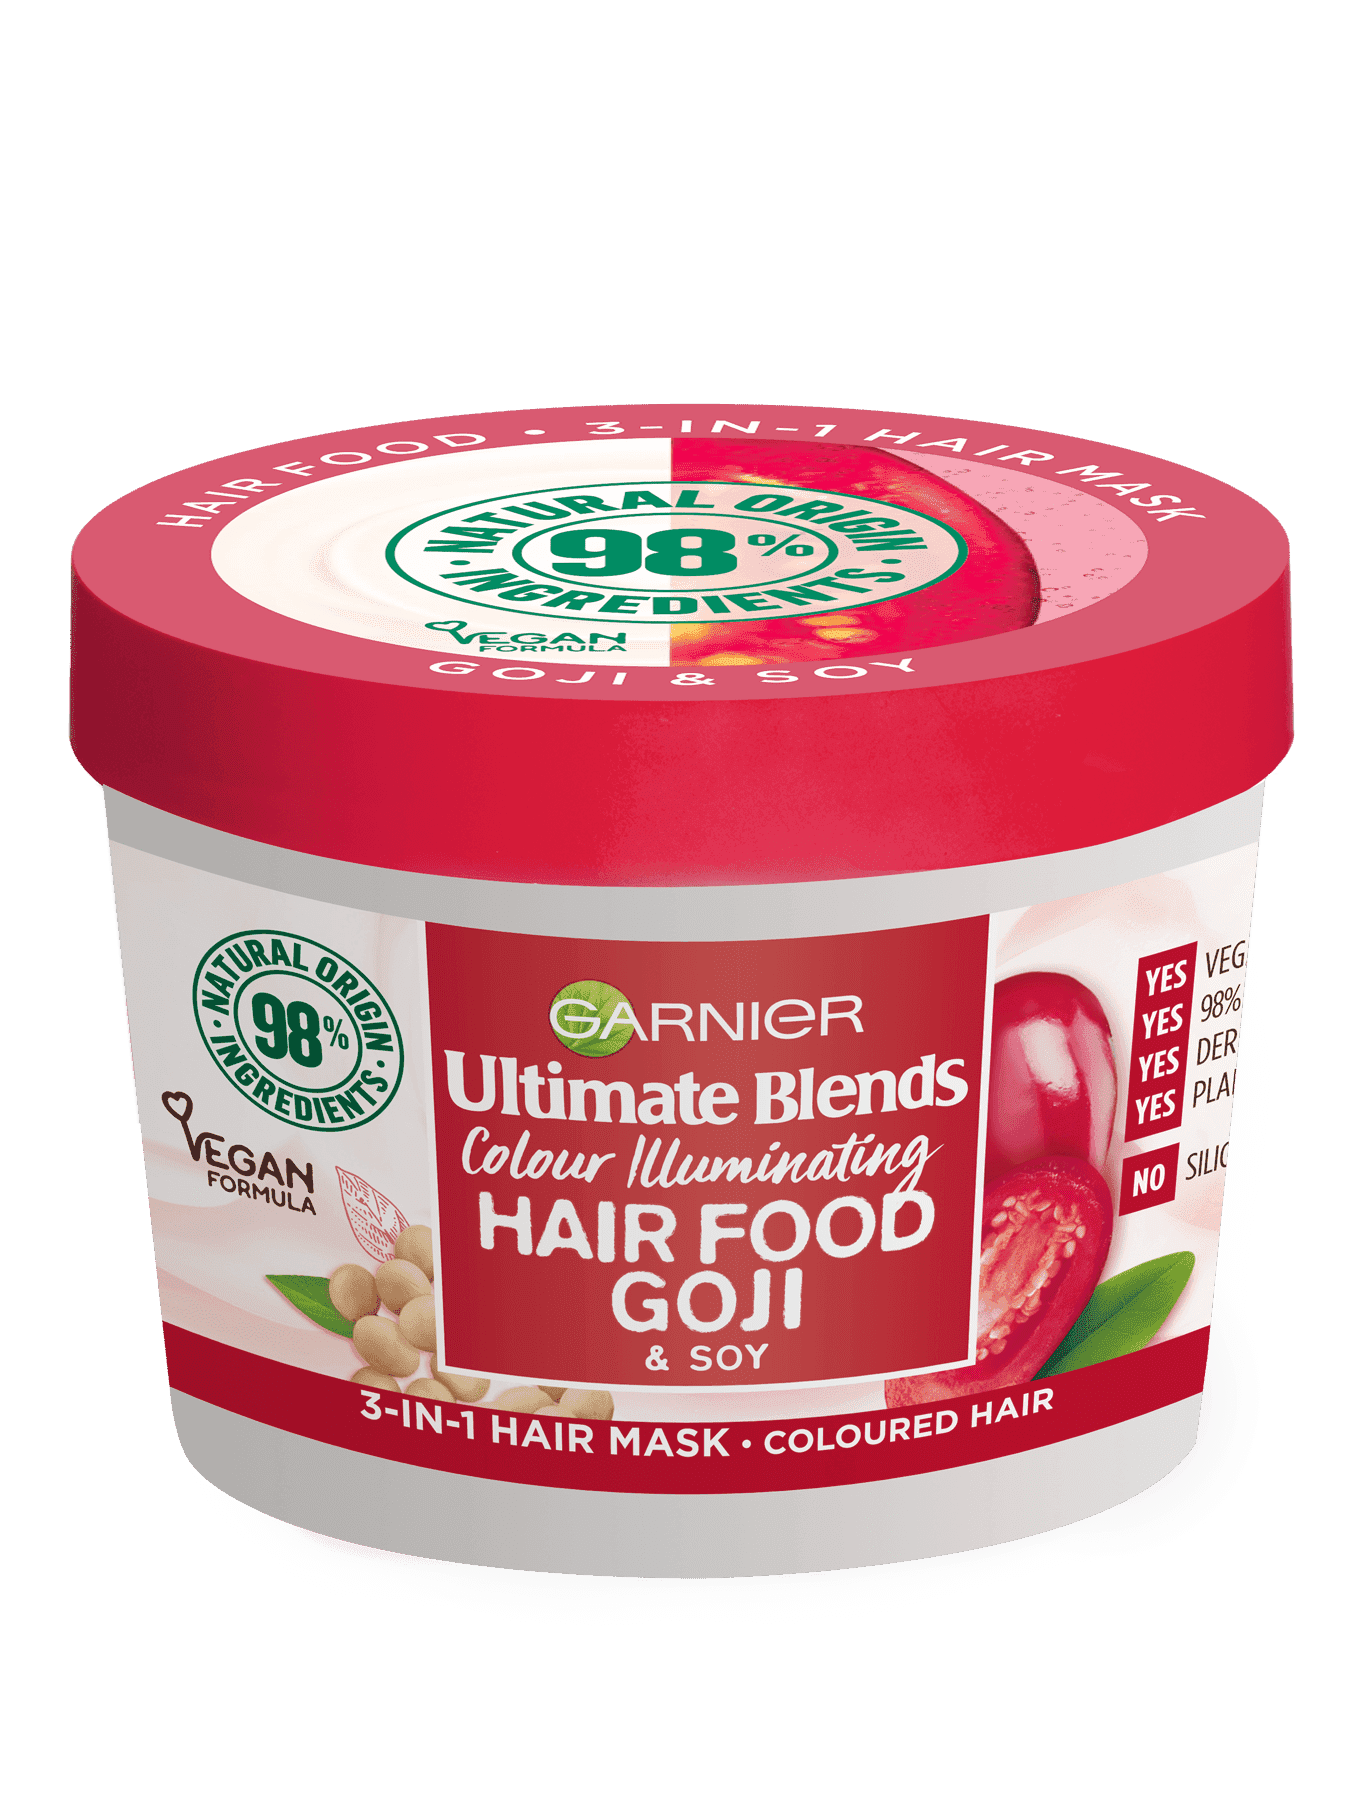 GOJI Hair Food packshot 3-in-1 hair mask